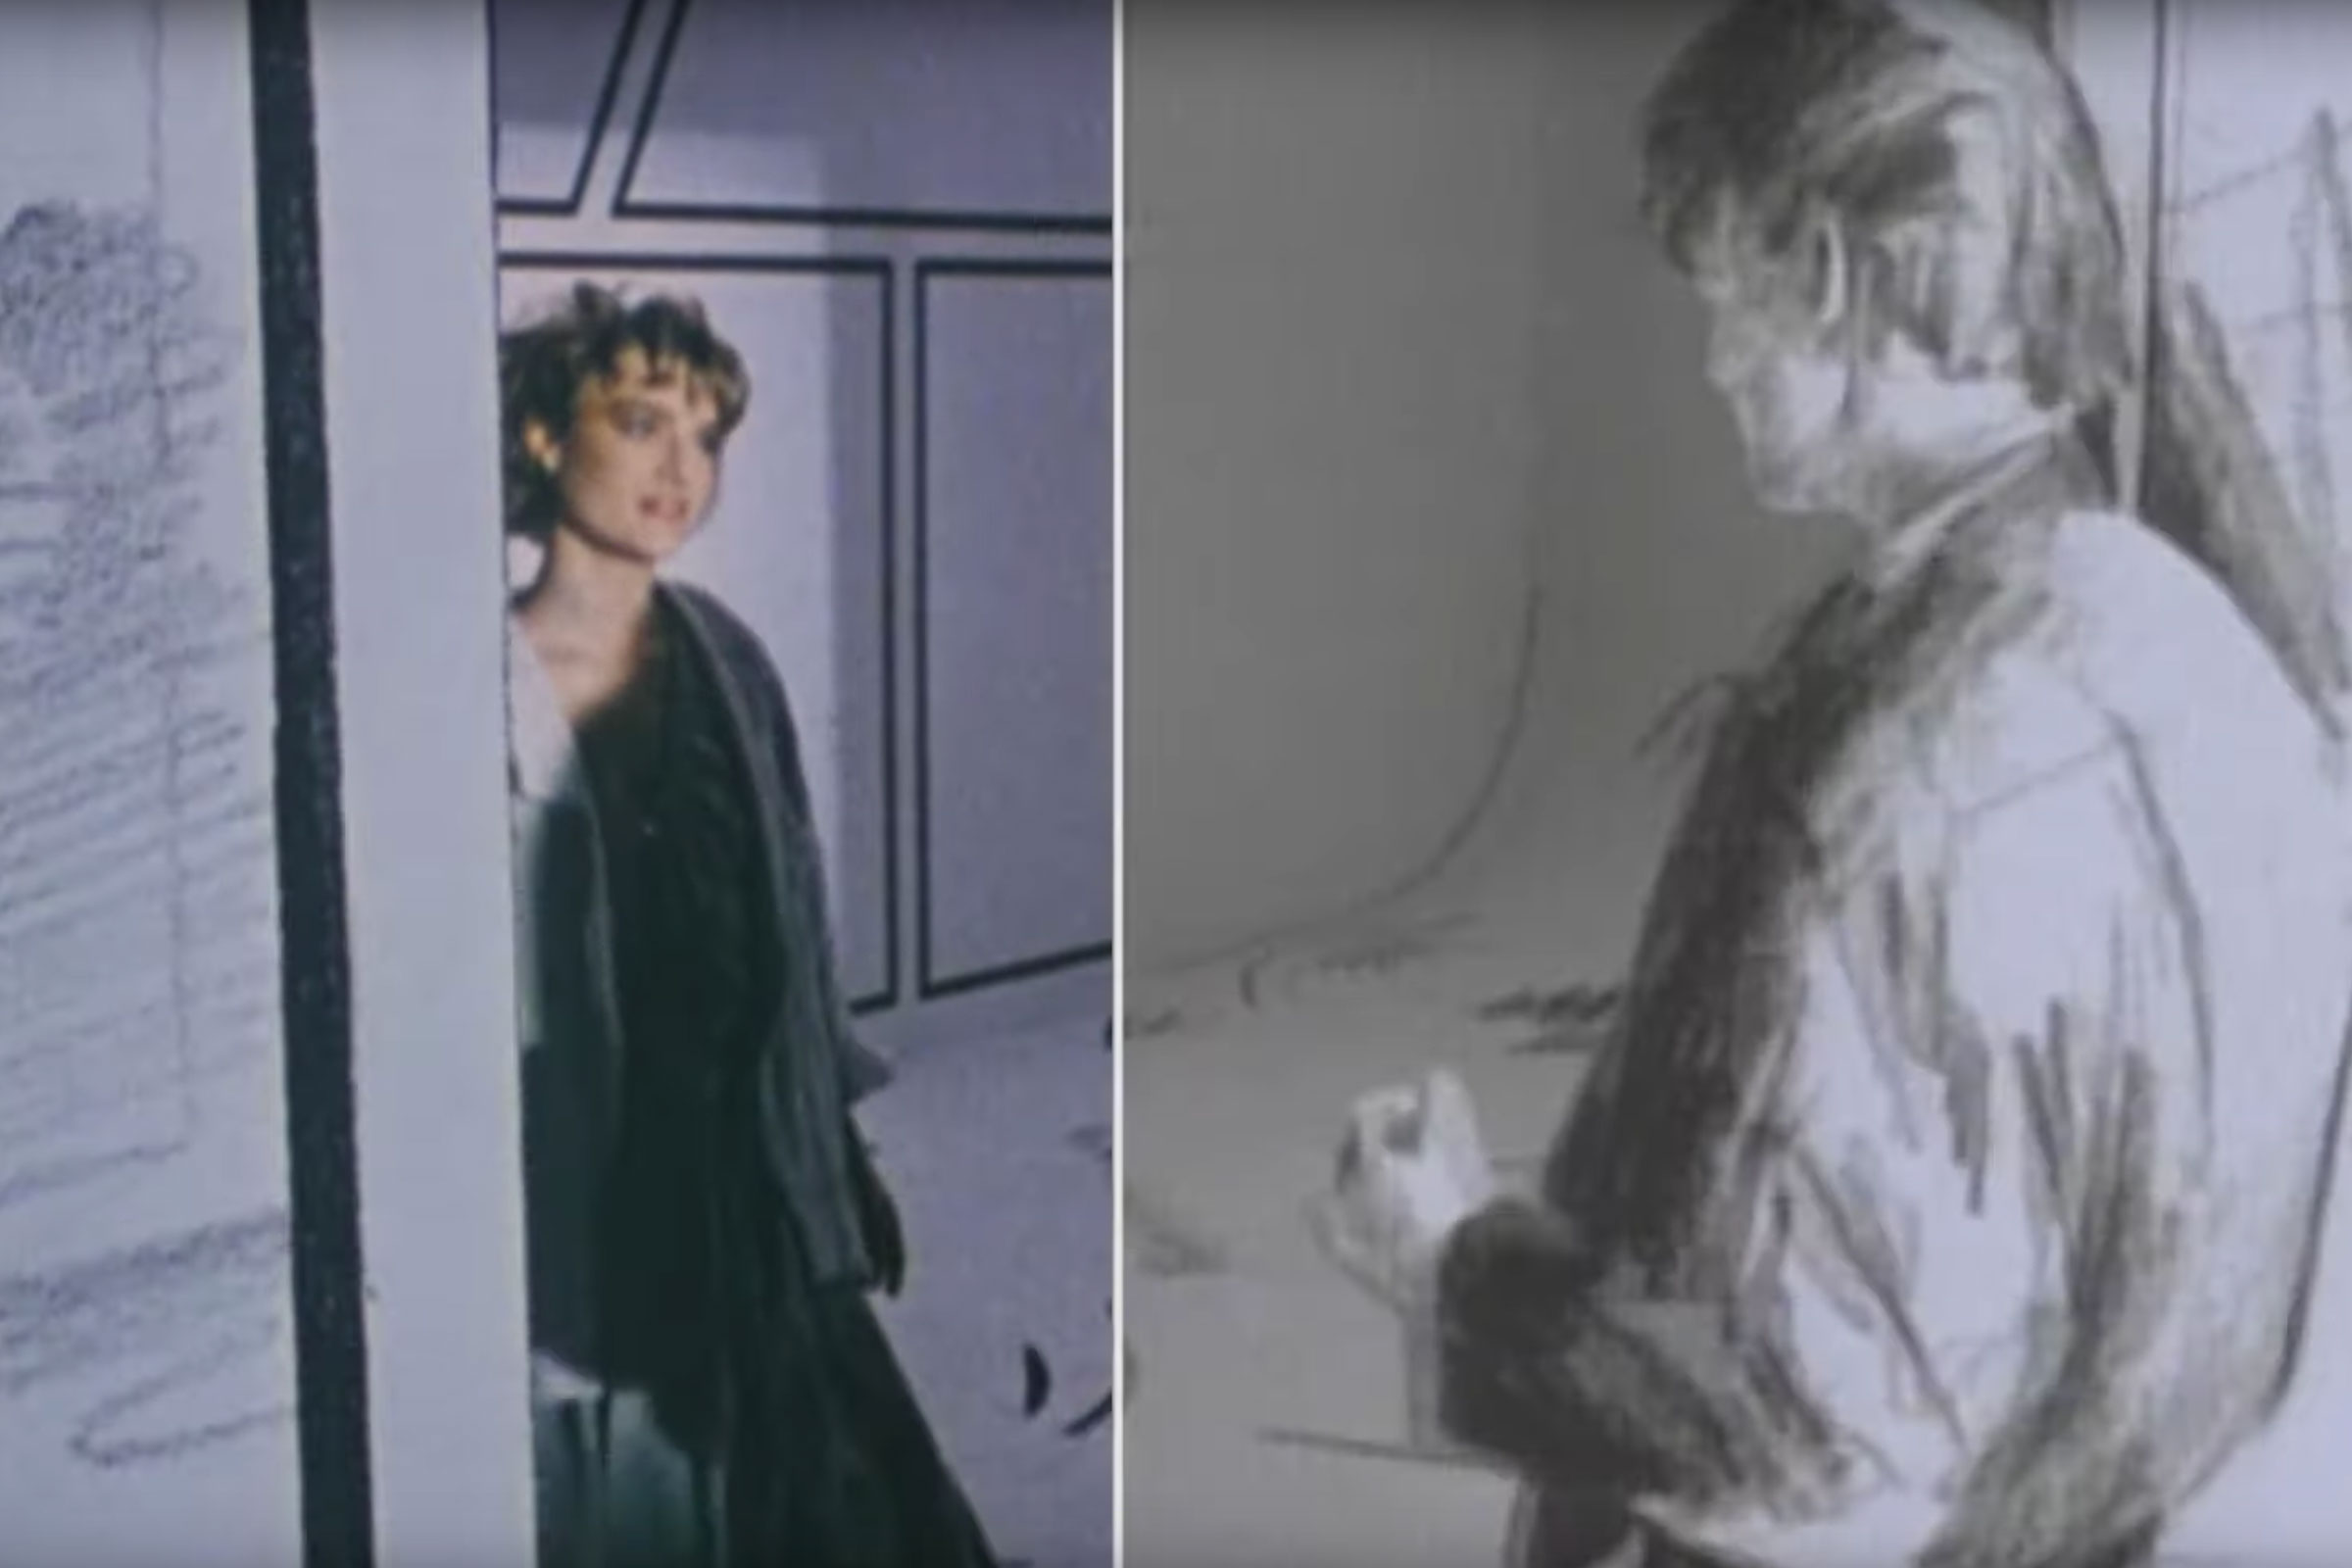 A-ha Release Remastered 4K Version of Classic 'Take on Me' Video - EpicNews